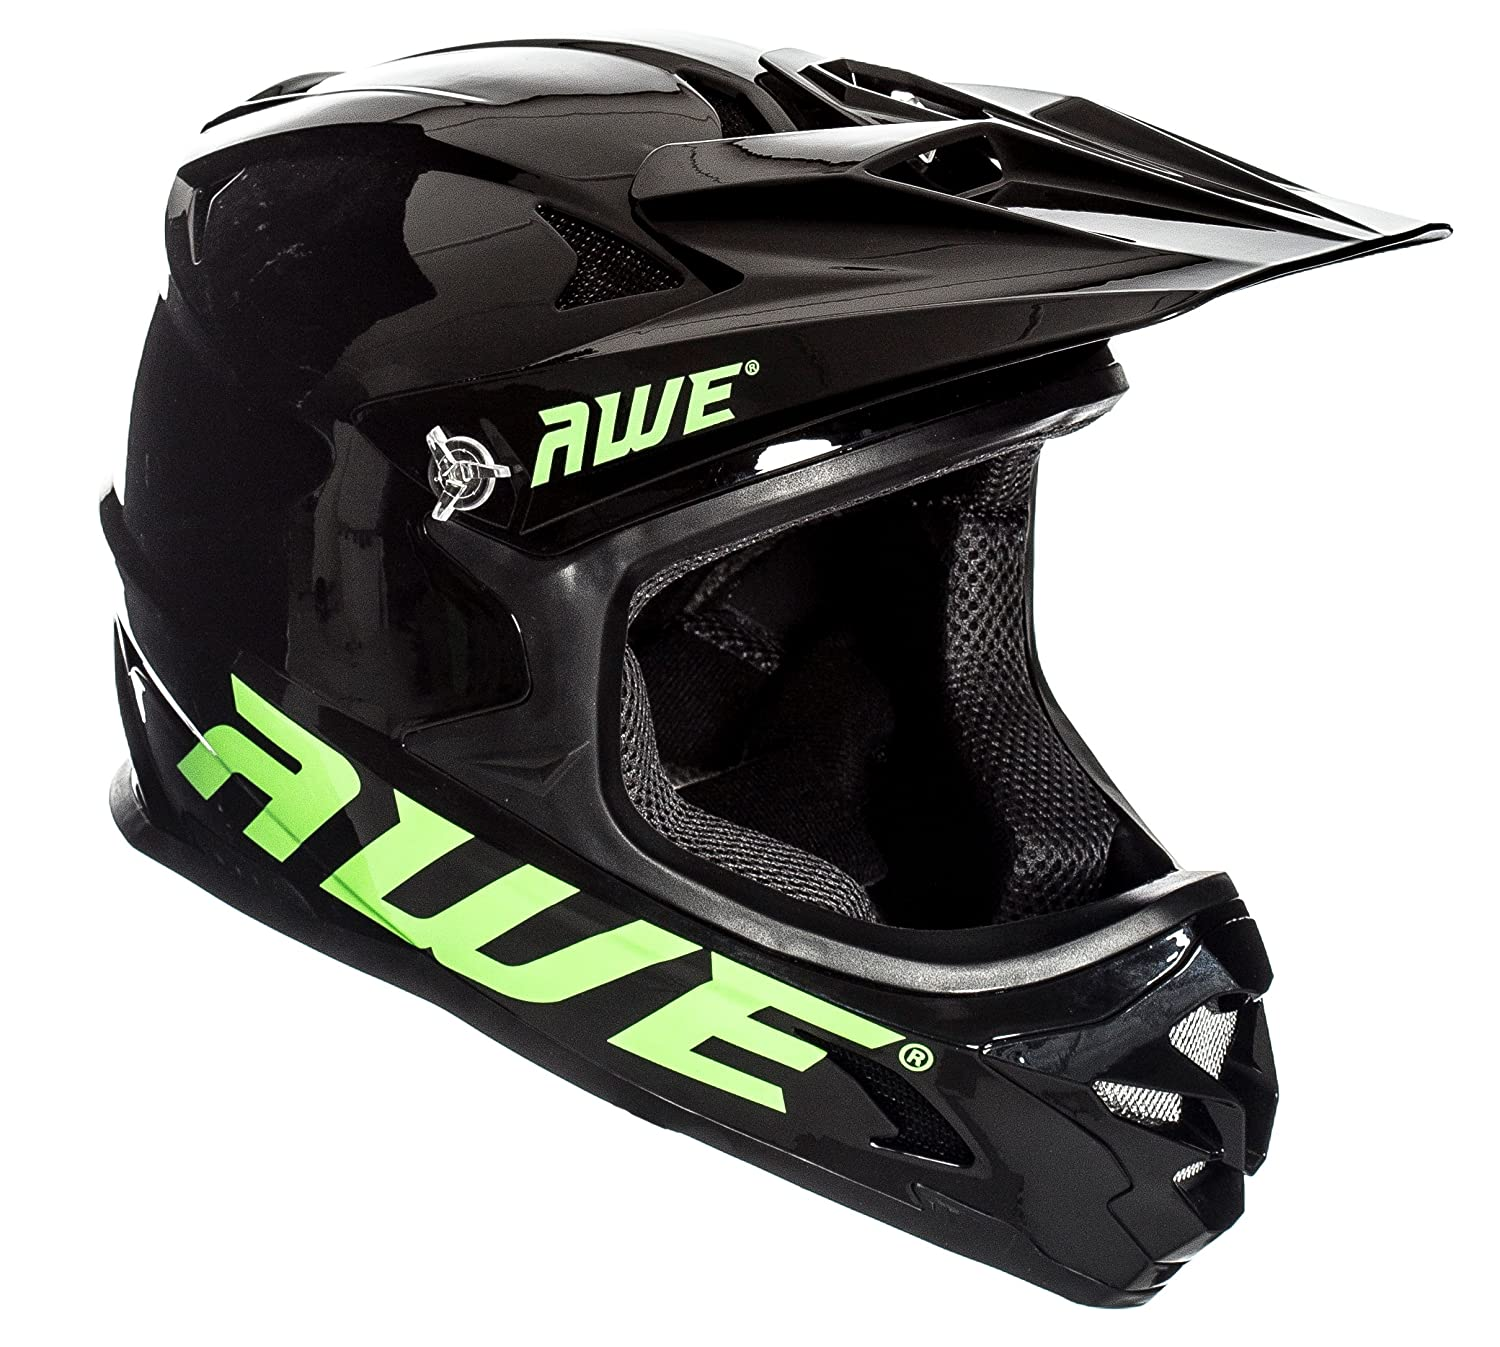 AWE® AWEBlast™ libre 5 Año Crash de repuesto * BMX Downhill casco negro Medium 56 - 58 cm